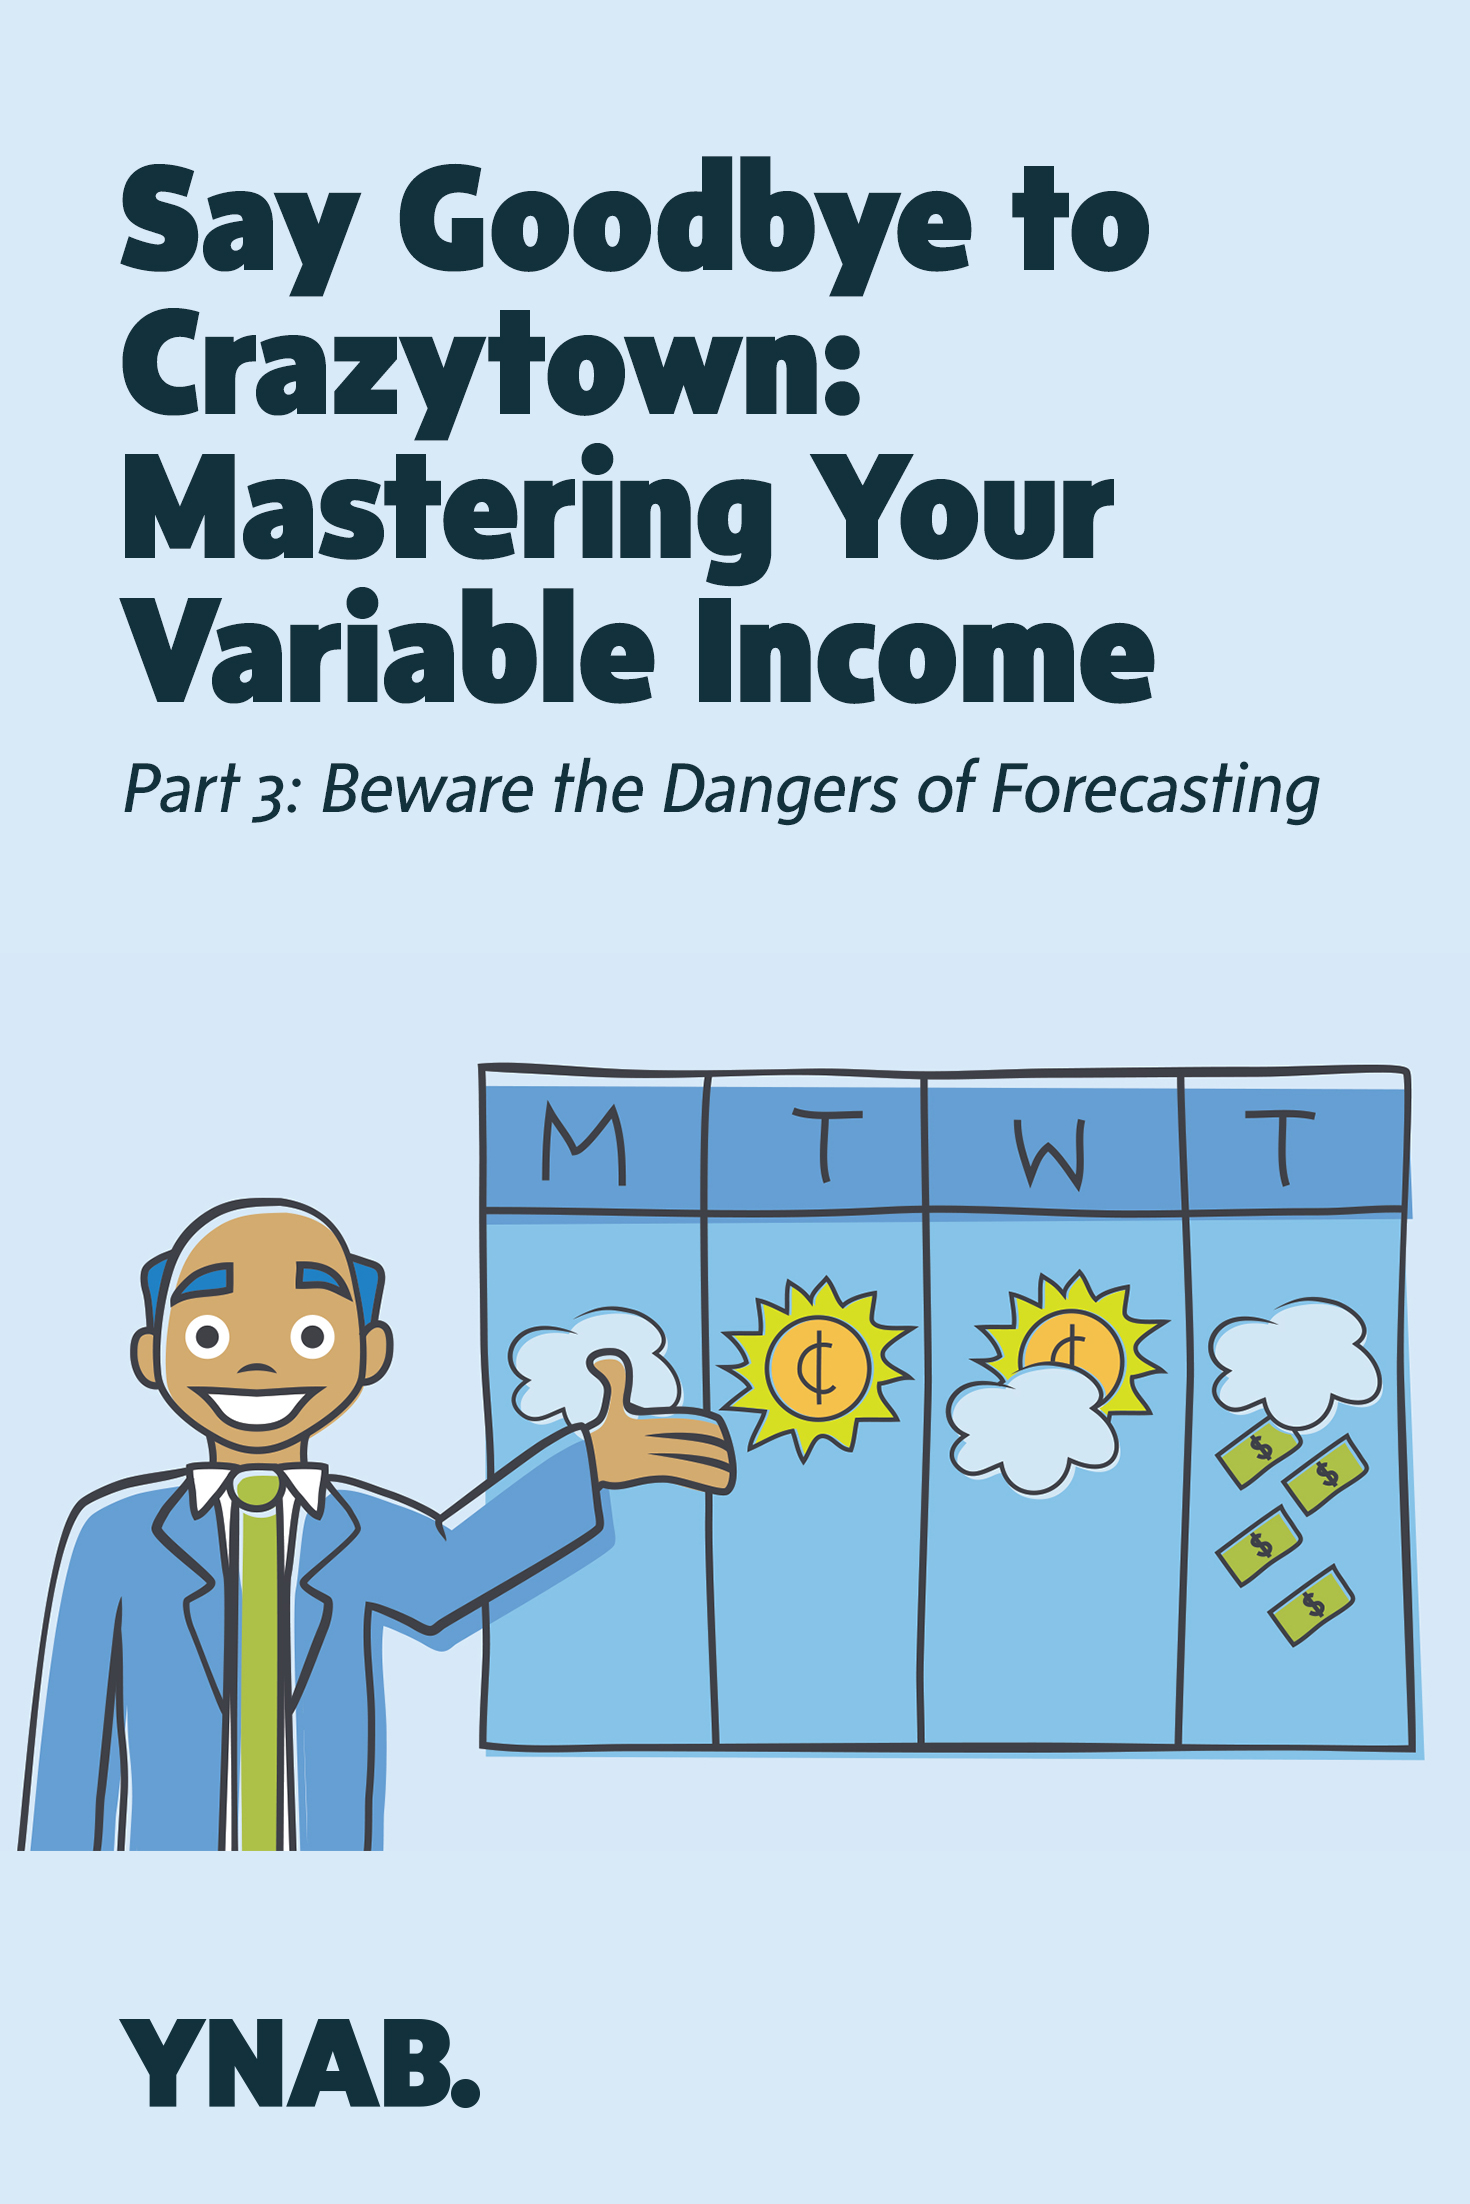 Need a budget for your variable income? We, at YNAB, believe it's possible to budget successful no matter when you get paid. | YNAB